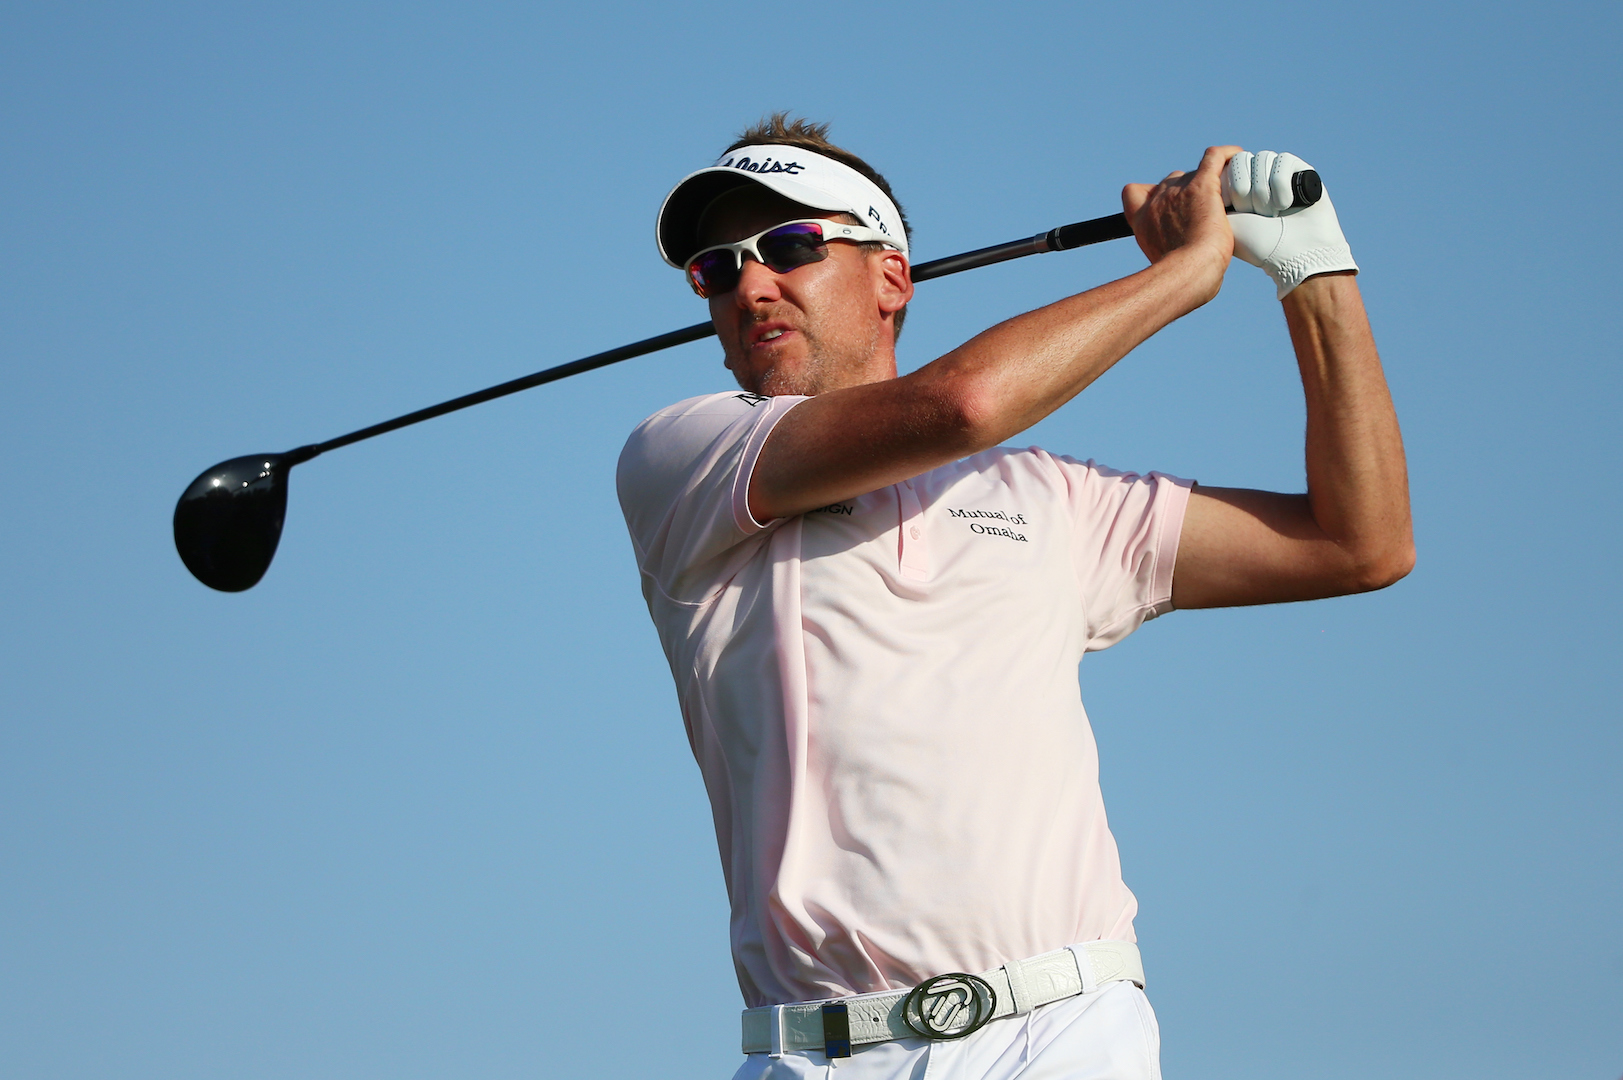 PGA Recognition Award for Poults